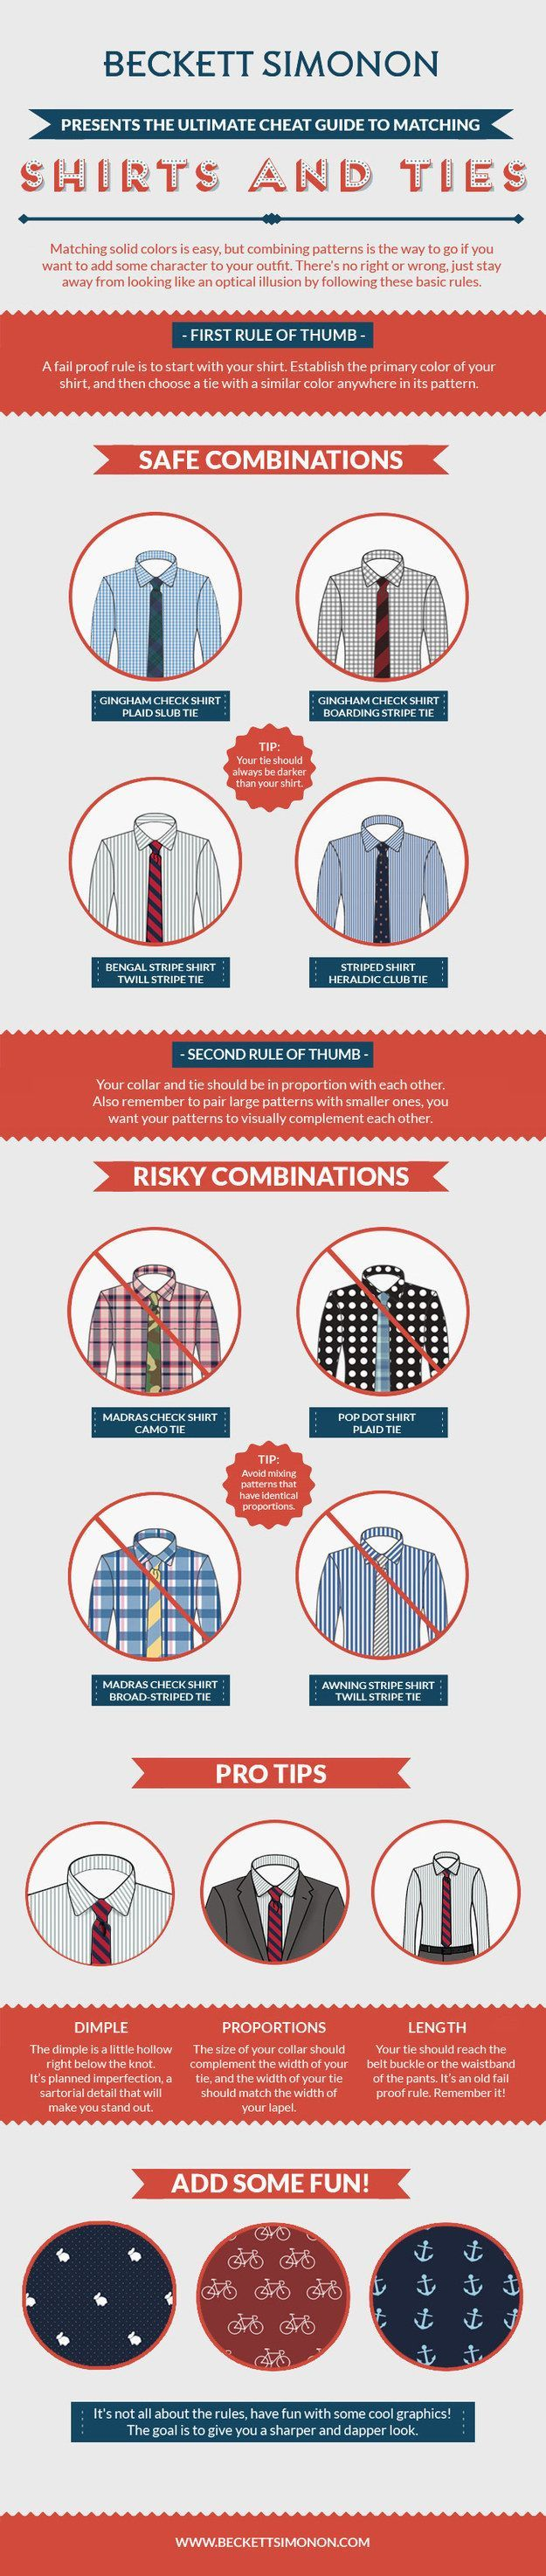 Life-Changing Style Charts Every Guy Needs Right Now Before you throw on that shirt with that tie, STOP! And take a look at these helpful color and pattern combos. | 25 Life-Changing Style Charts Every Guy Needs Right NowBefore you throw on that shirt with that tie, STOP! And take a look at these helpful color and pattern combos. | 25 Life-Changing Style Charts Every Guy...